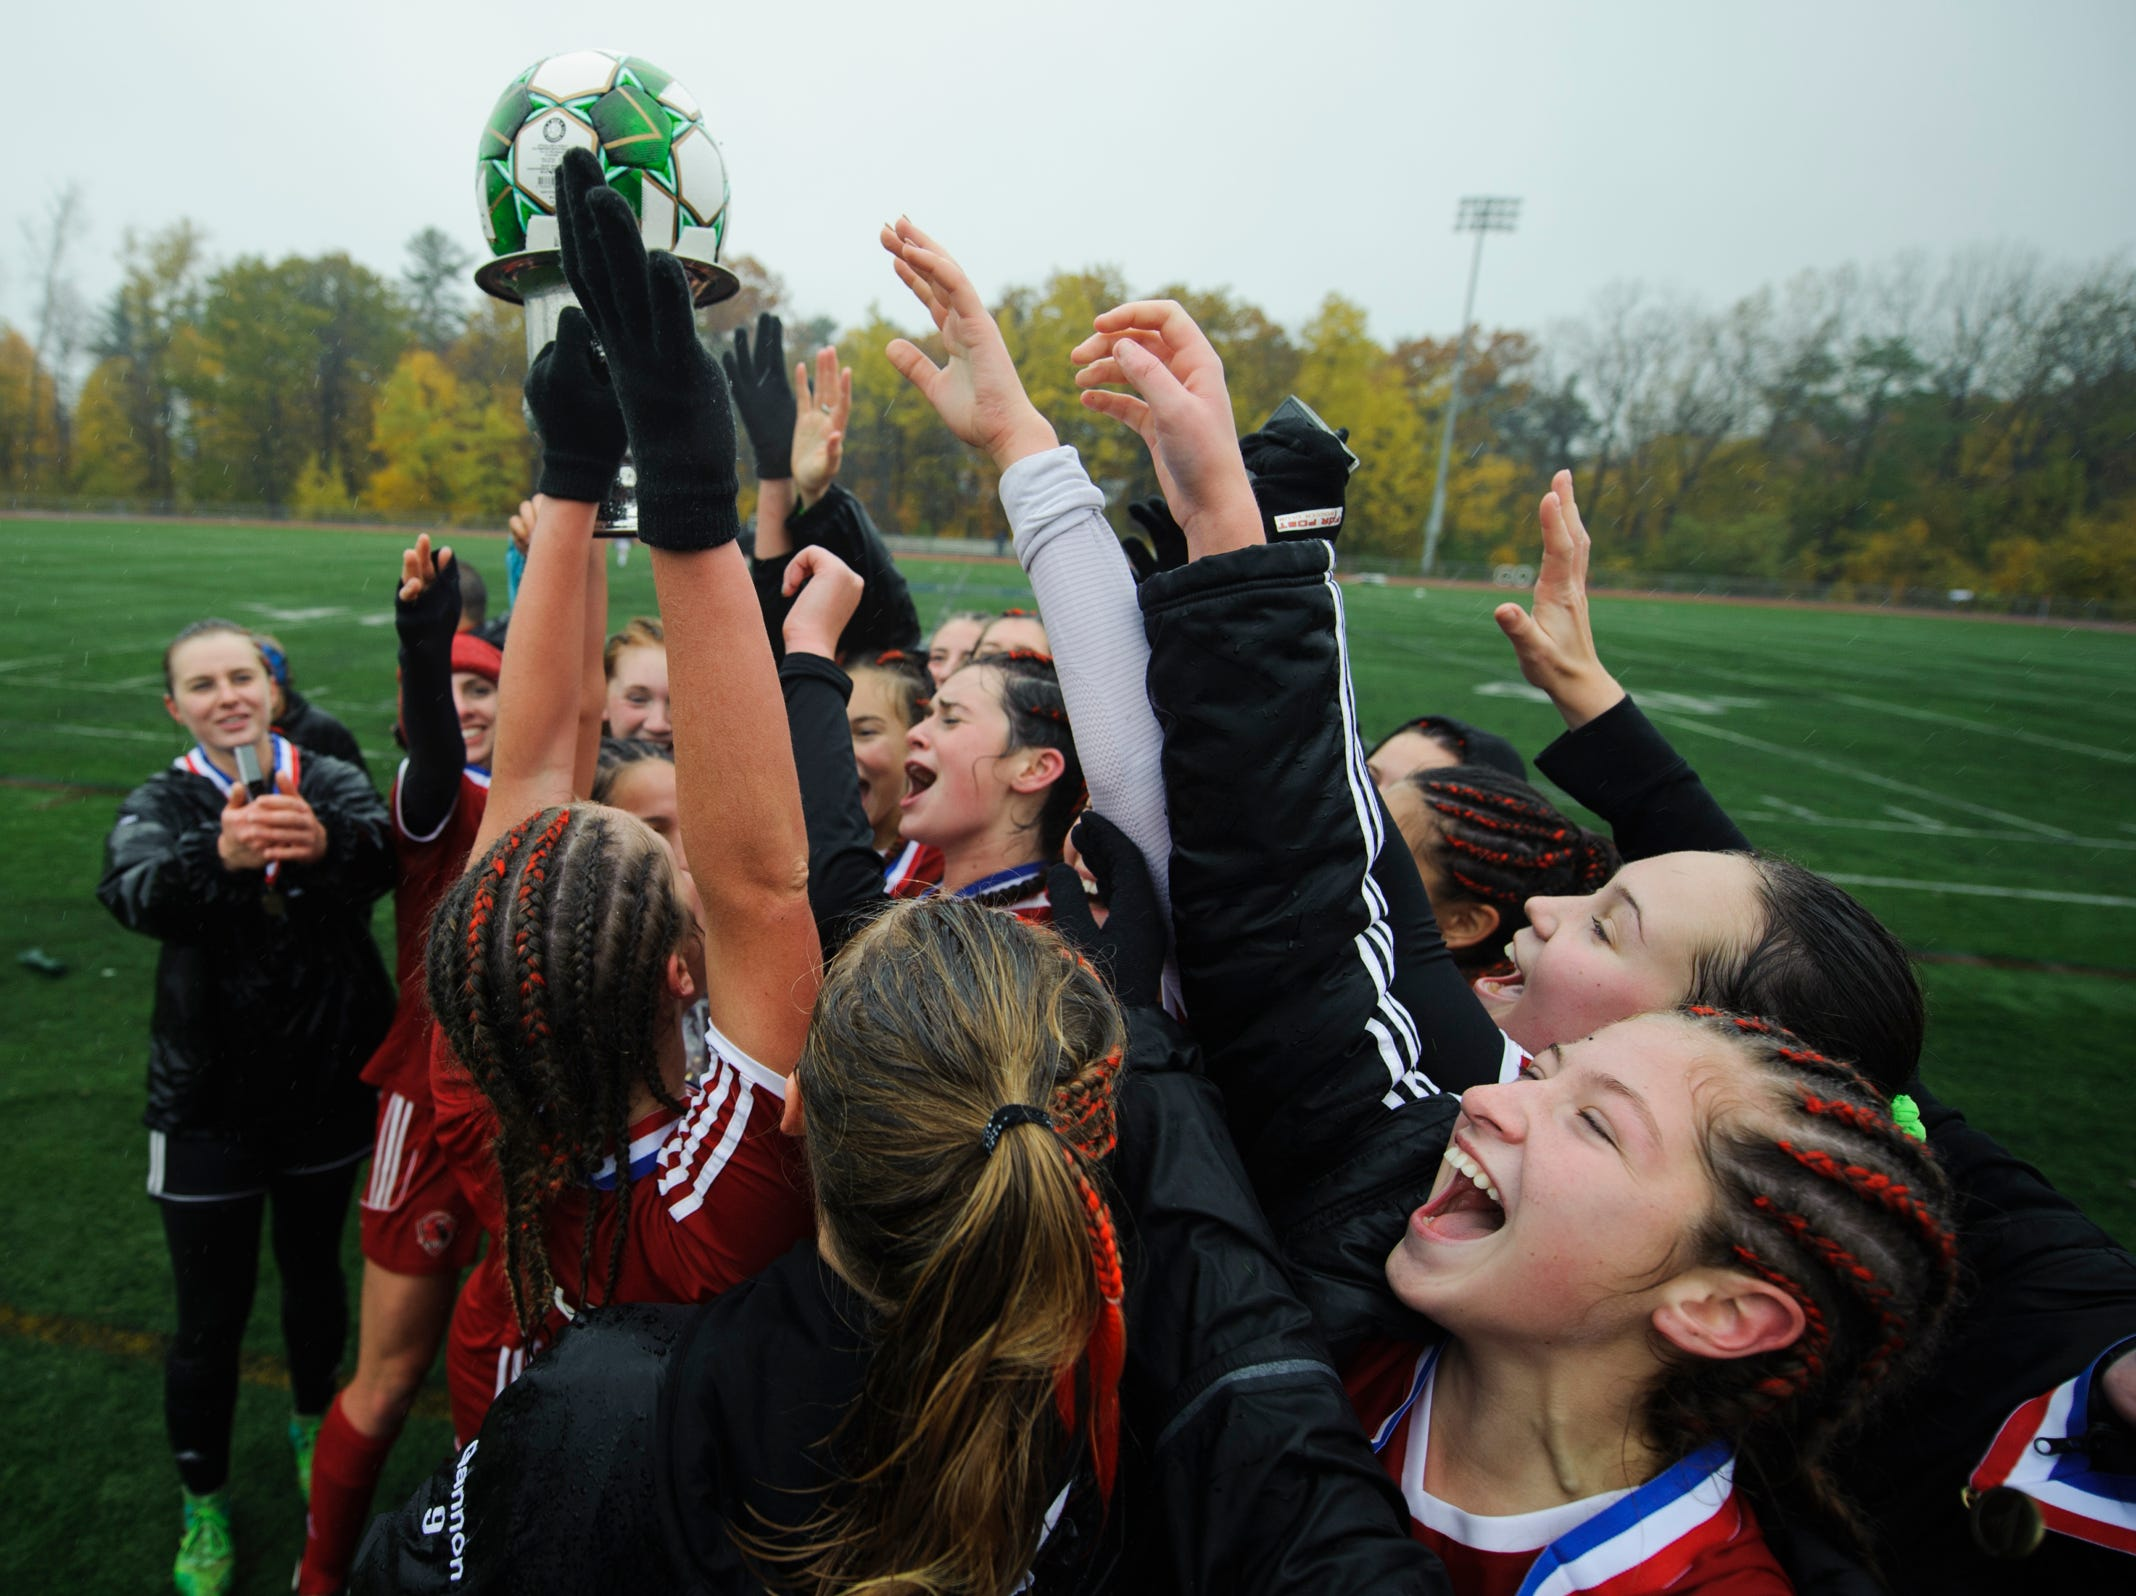 Champlain Valley players lit the trophy following their 1-0 win in the Division I girls soccer championship game between the Colchester Lakers and the Champlain Valley Union Redhawks at Buck Hard Field on Saturday morning November 3, 2018 in Burlington.